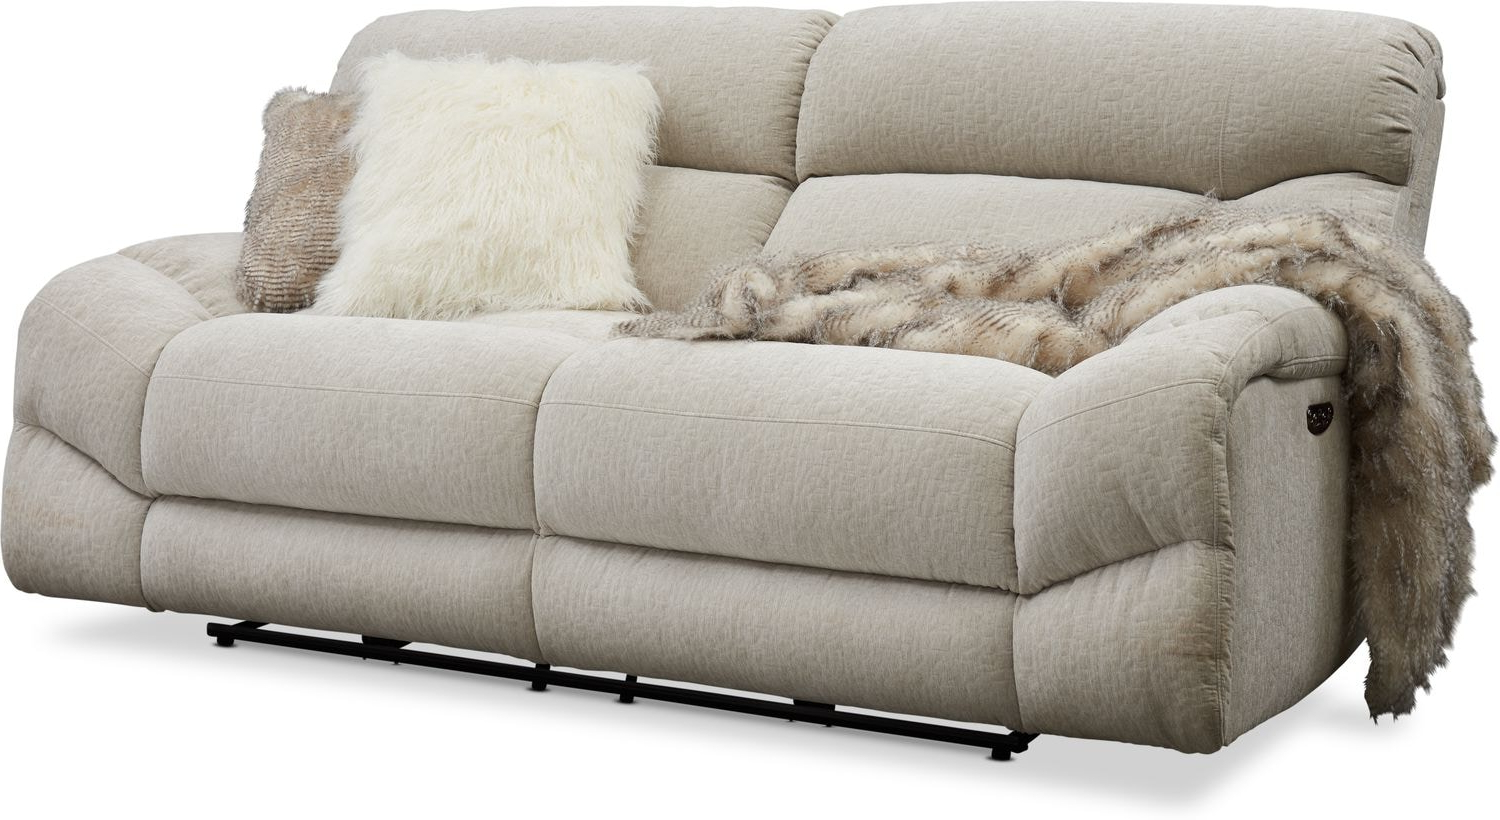 Latest Marco Leather Power Reclining Sofas Intended For Sofa Power Recliner – Latest Sofa Pictures (View 11 of 20)